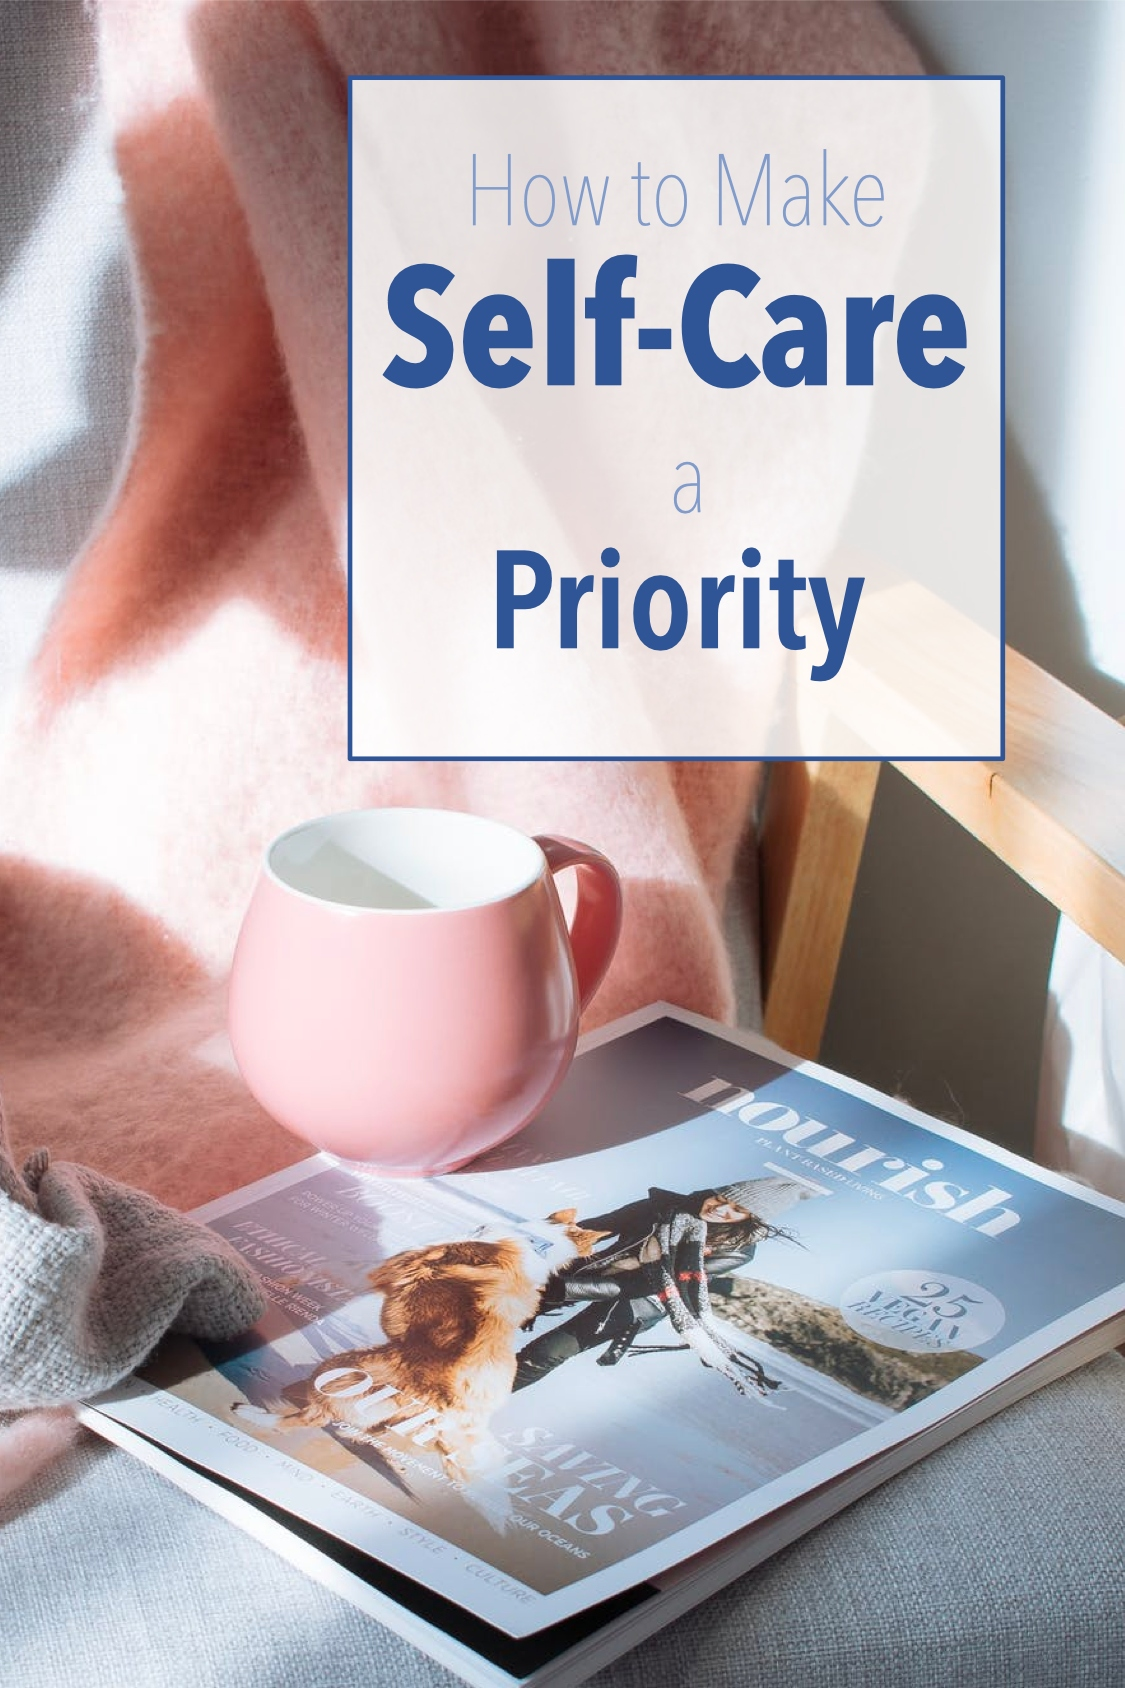 Self-Care is a Priority